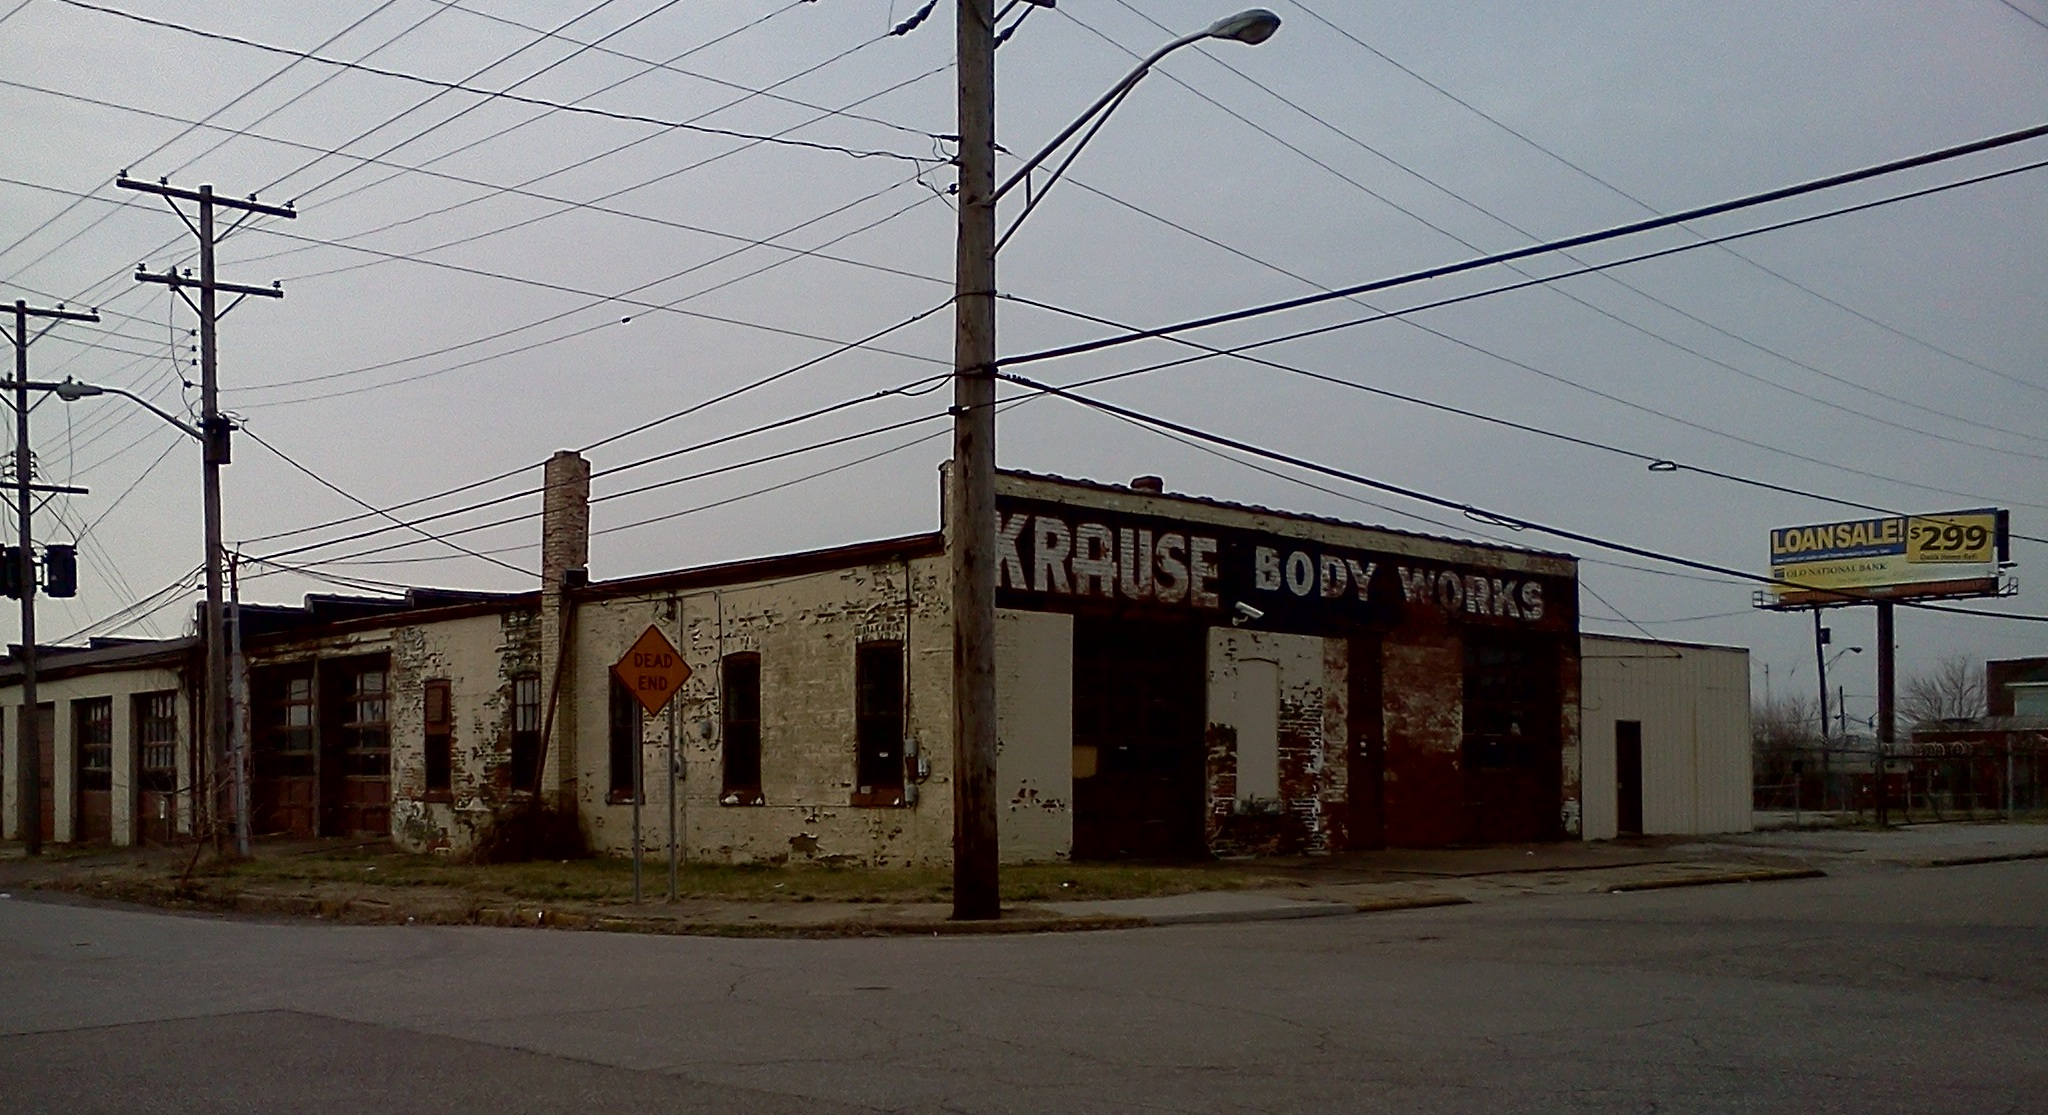 Krause Body Works